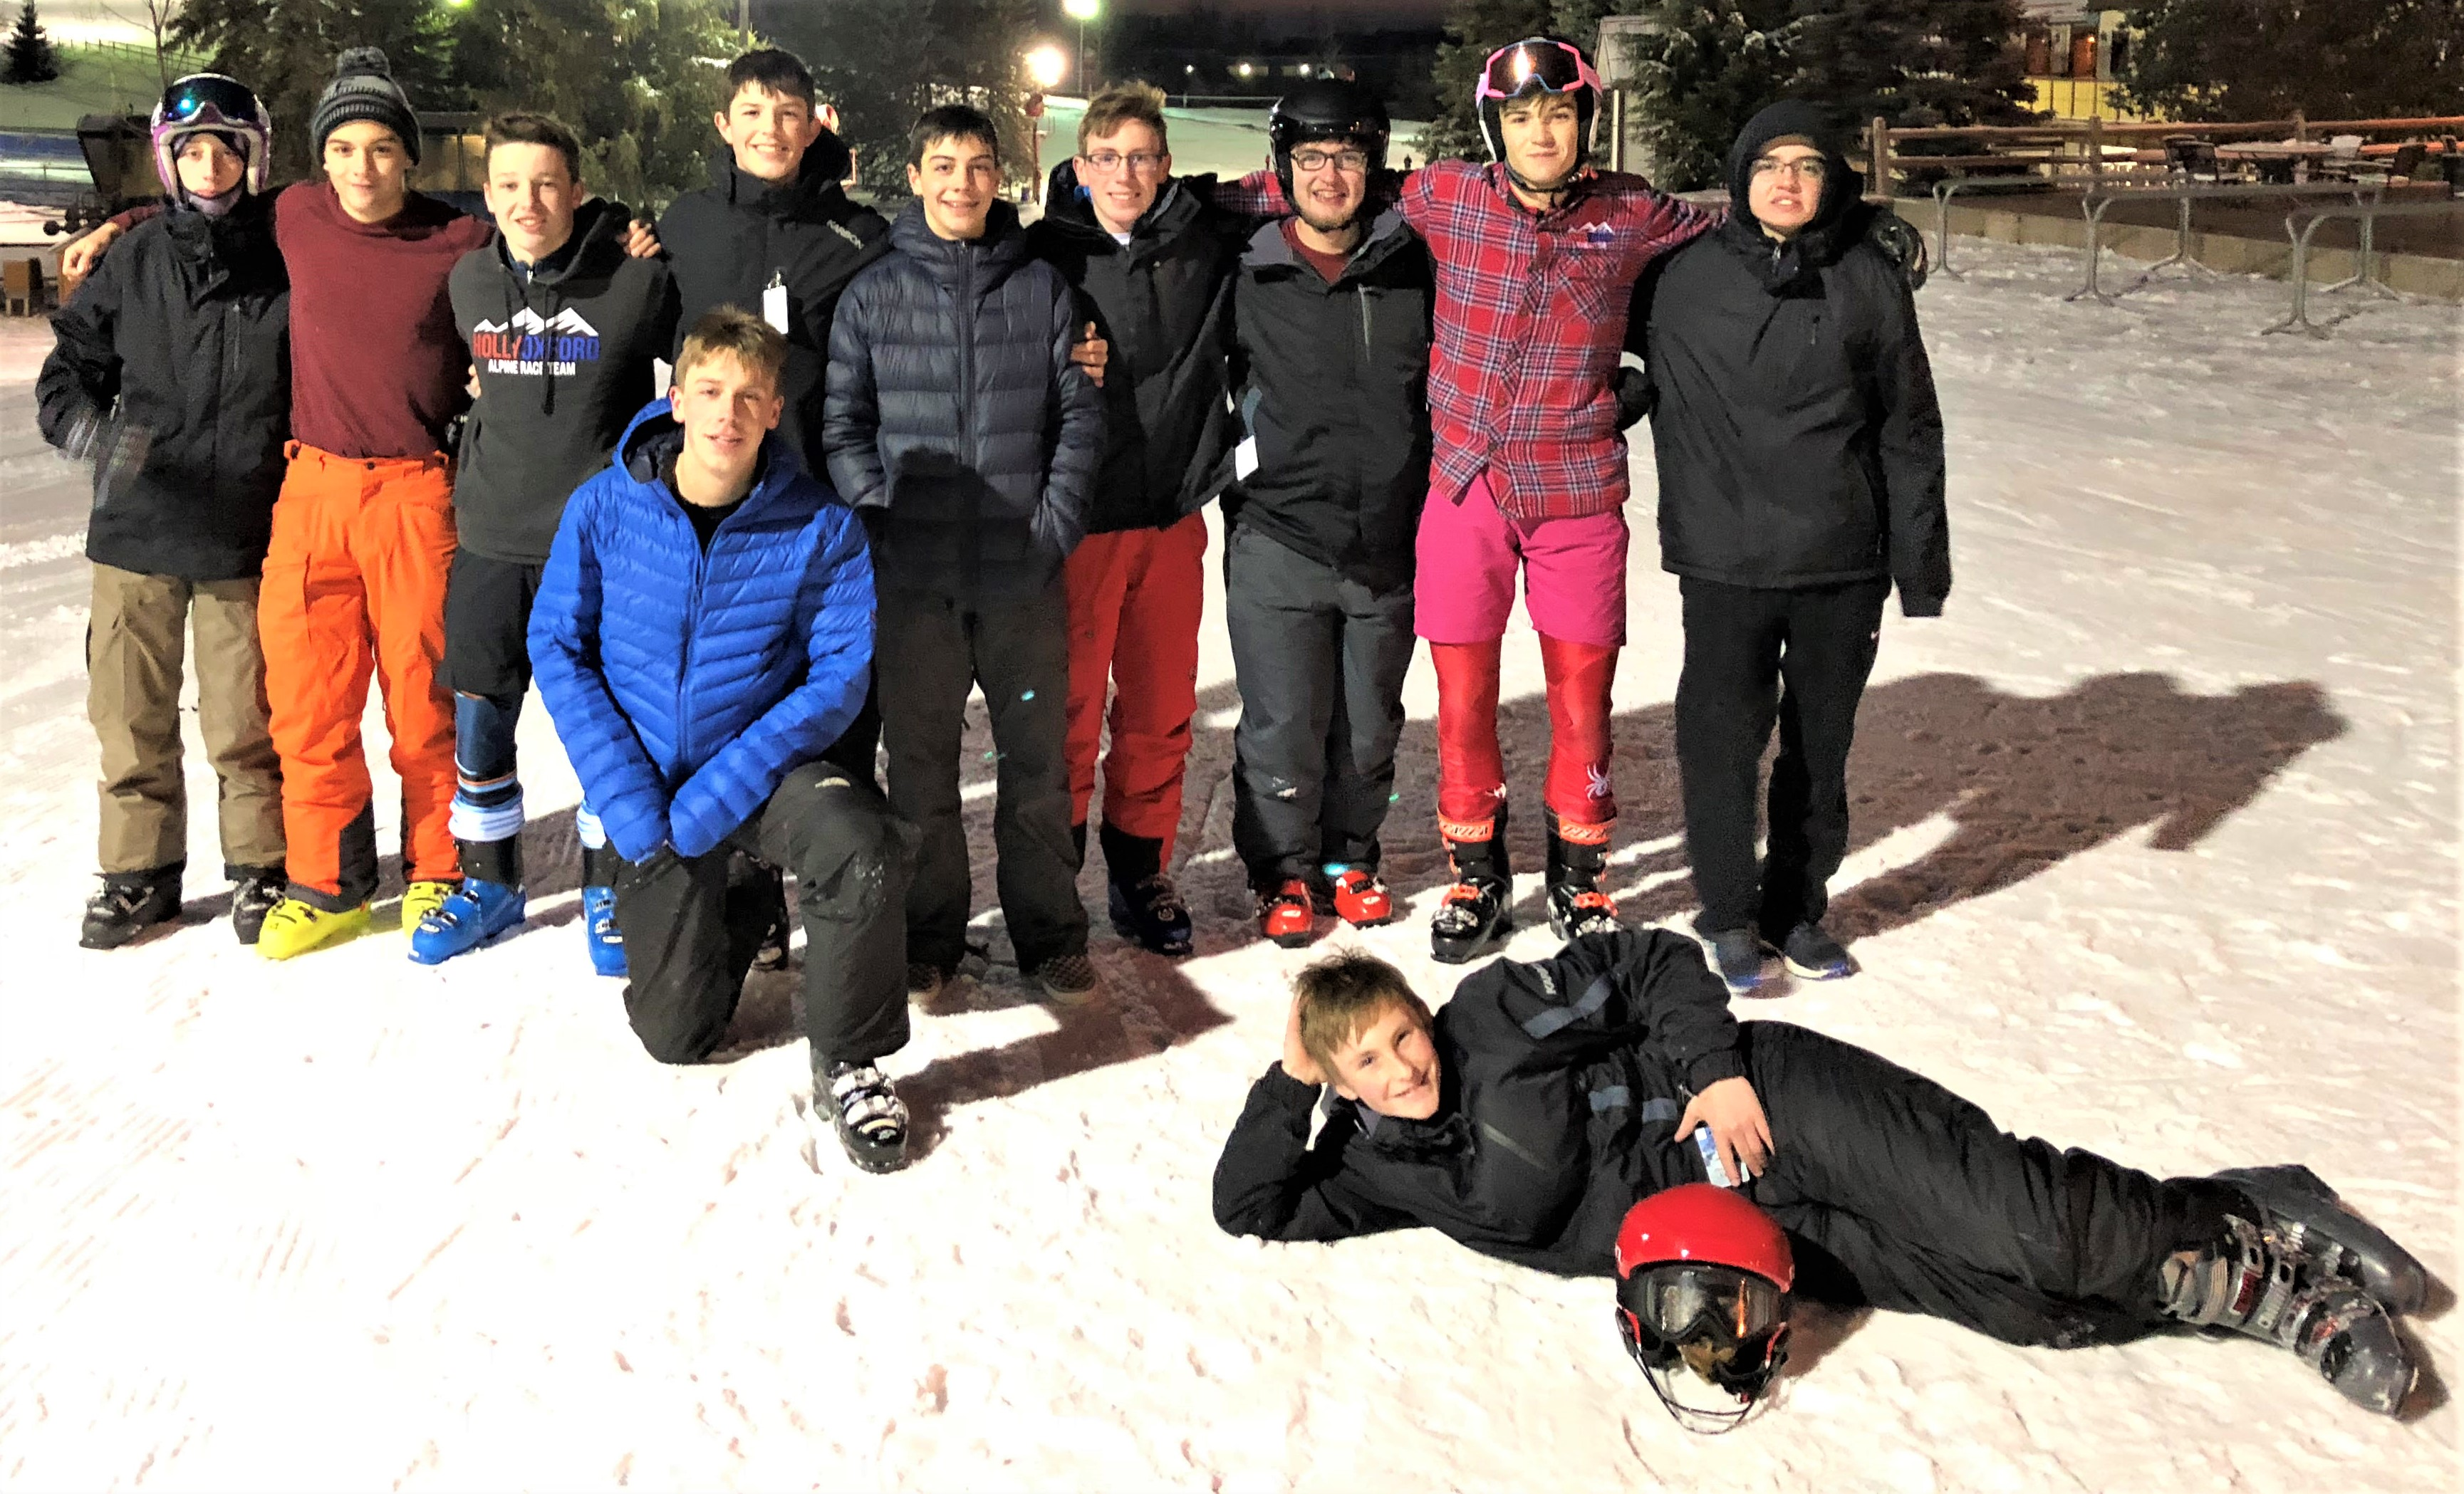 Back row, from left: Leyton Reister, Jack Ford, Nick Reese, Mitchell Tiell, Jacob Denman, Cole Kennedy, Noah Ramsey, Connor Ford and Brendan Coughlin. Front row: Connor Denman and Alec Curtis. Photo provided.